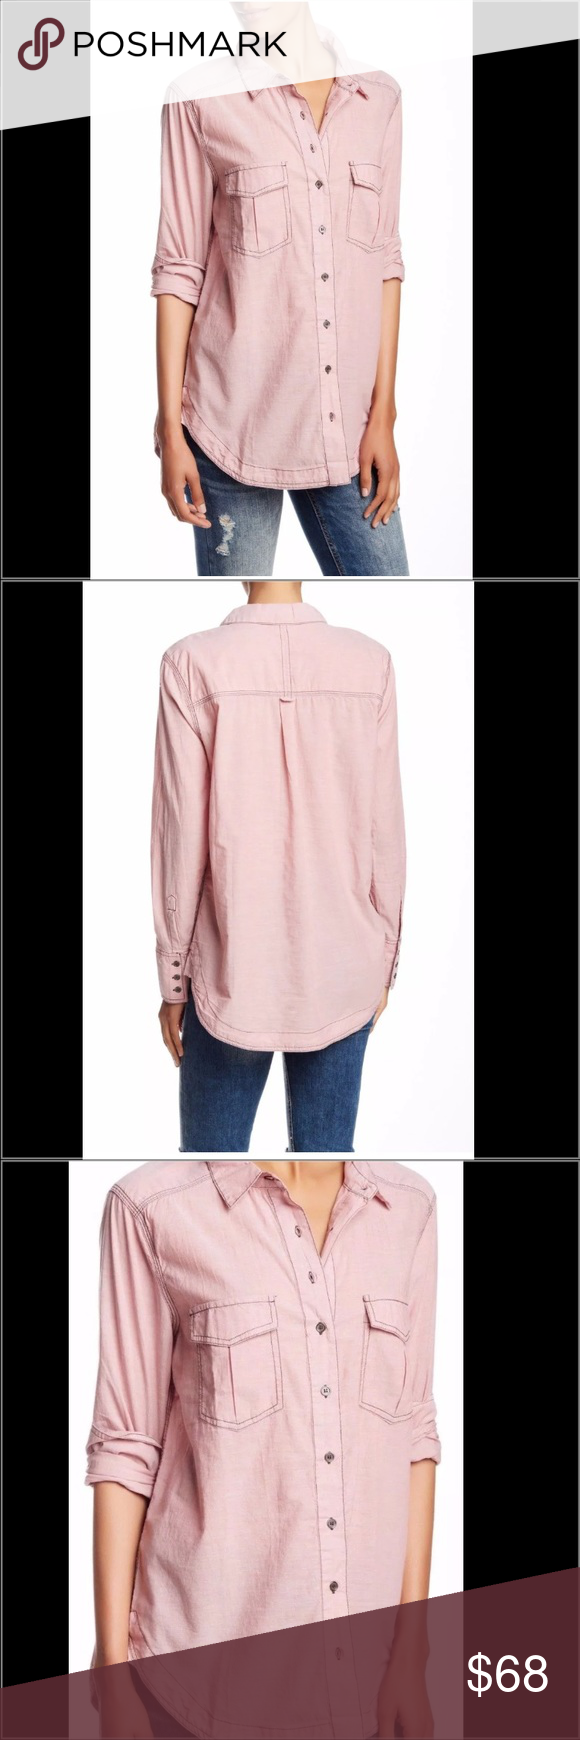 Free People LS Button Down Shirt Free People LS button down shirt.  New with tags. A soft cotton button down for casual days. Long button down top by Free People layers perfectly under a soft spring sweater. Collar. Buttons along front. Double front flap pockets. Long sleeves with button a t cuff. Shirt tail hem. Contrast stitching. Relaxed fit. We adore how the muted pastel hue adds some color to our spring layered looks. Free People Tops Button Down Shirts